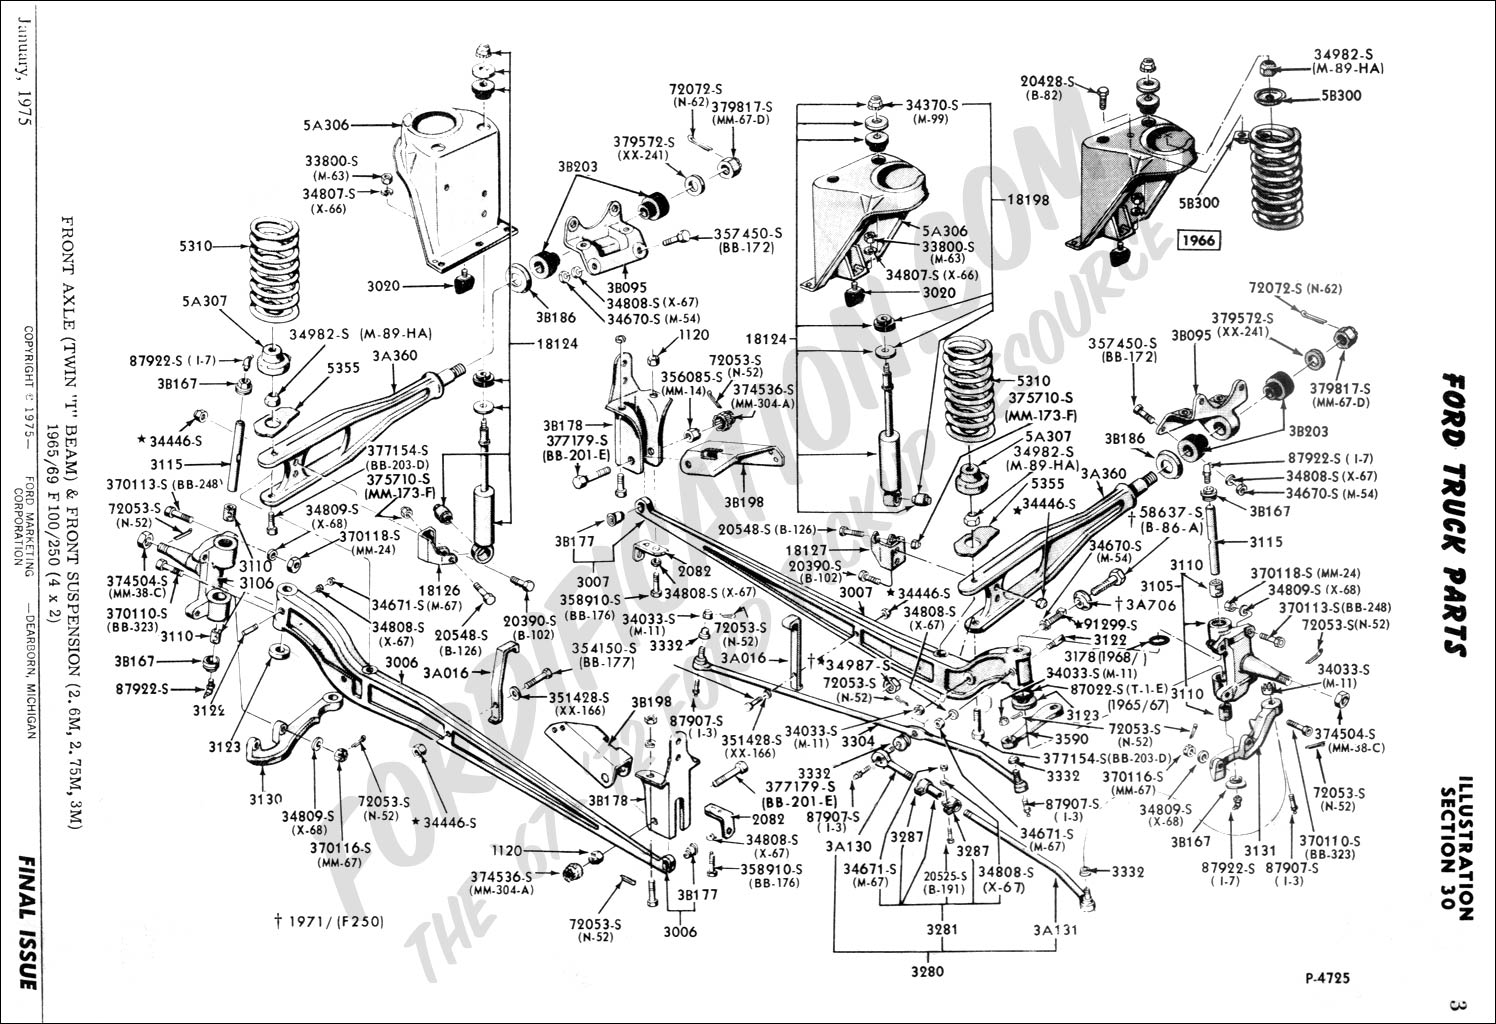 Schematics a also 667570 No Brake Lights Indicators 65 Mustang also 3c0lh Recently Bought Cute 1957 Ford F100 Download besides 1978 Chevy Truck Wiring Diagram additionally Grounding Wire Location Help Please 10069. on 1966 ford f100 brake parts